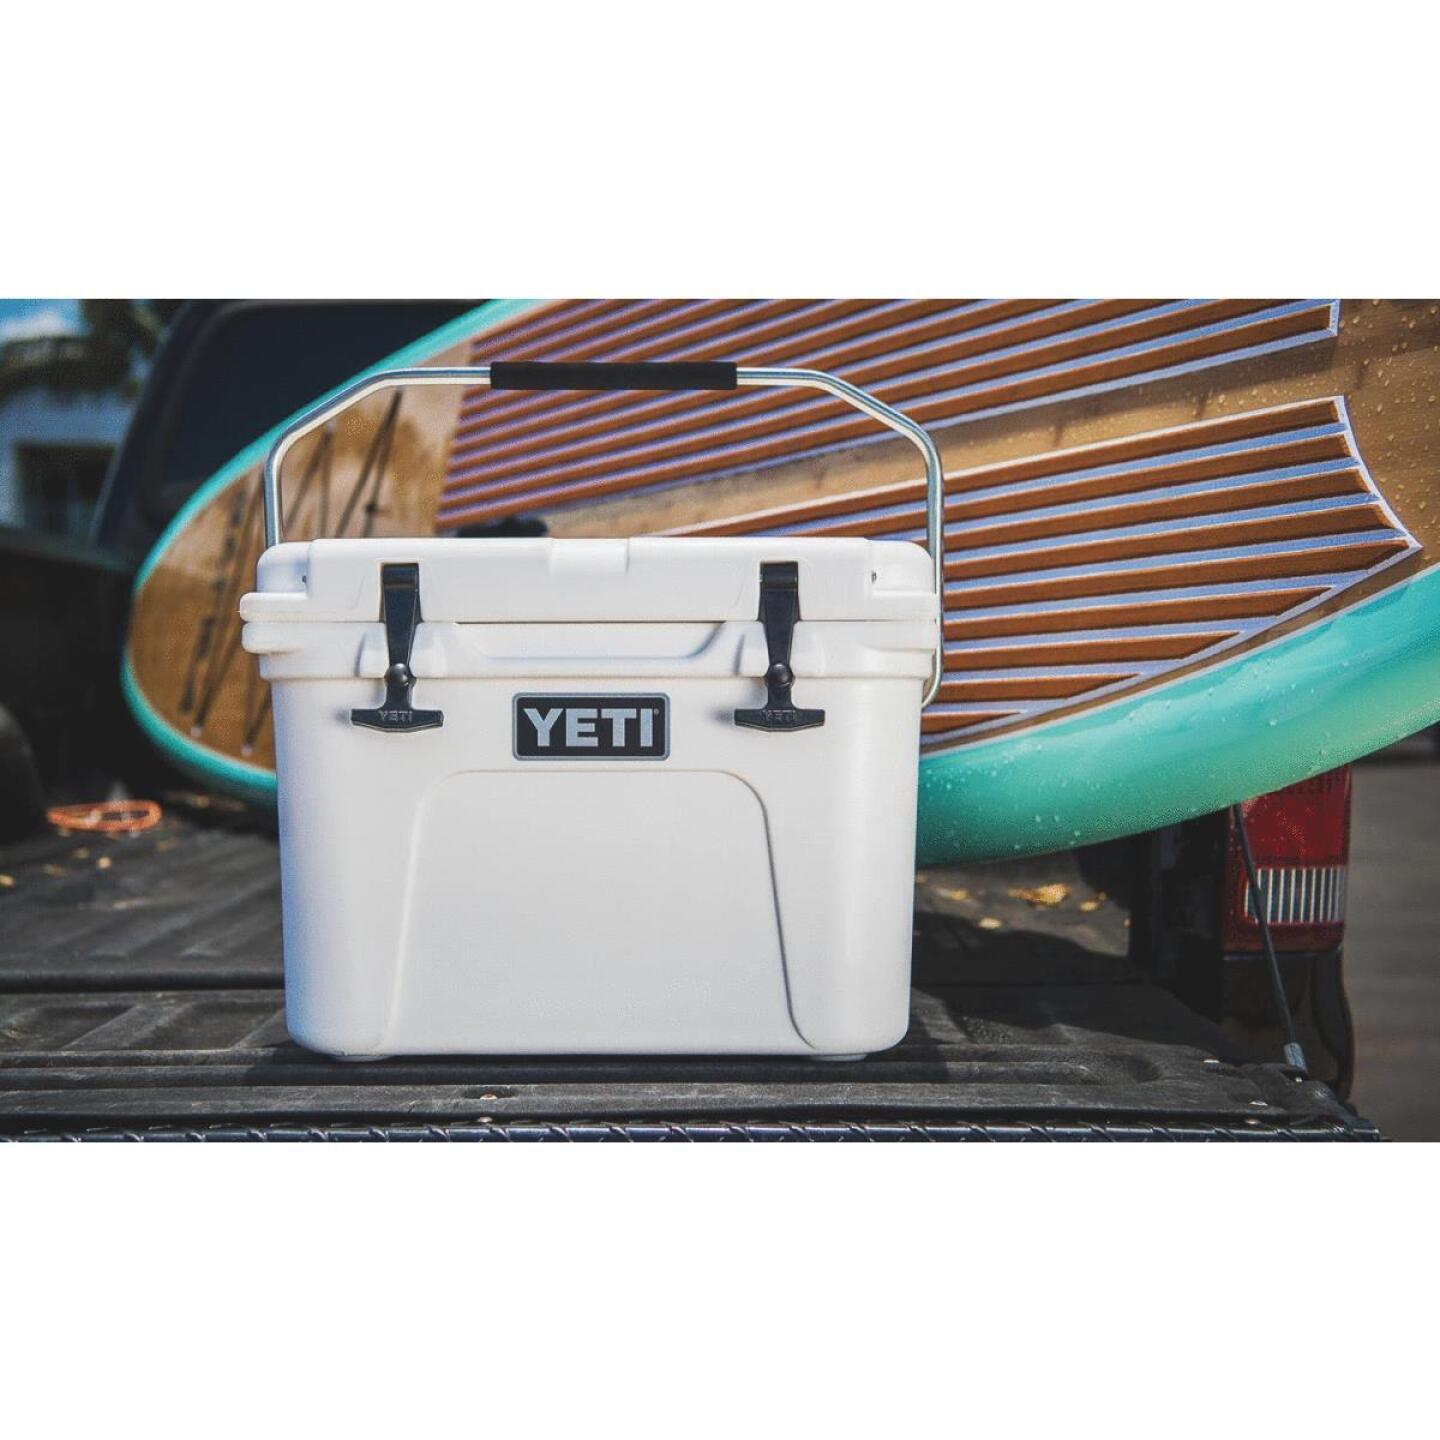 Yeti Roadie 20, 16-Can Cooler, White Image 5